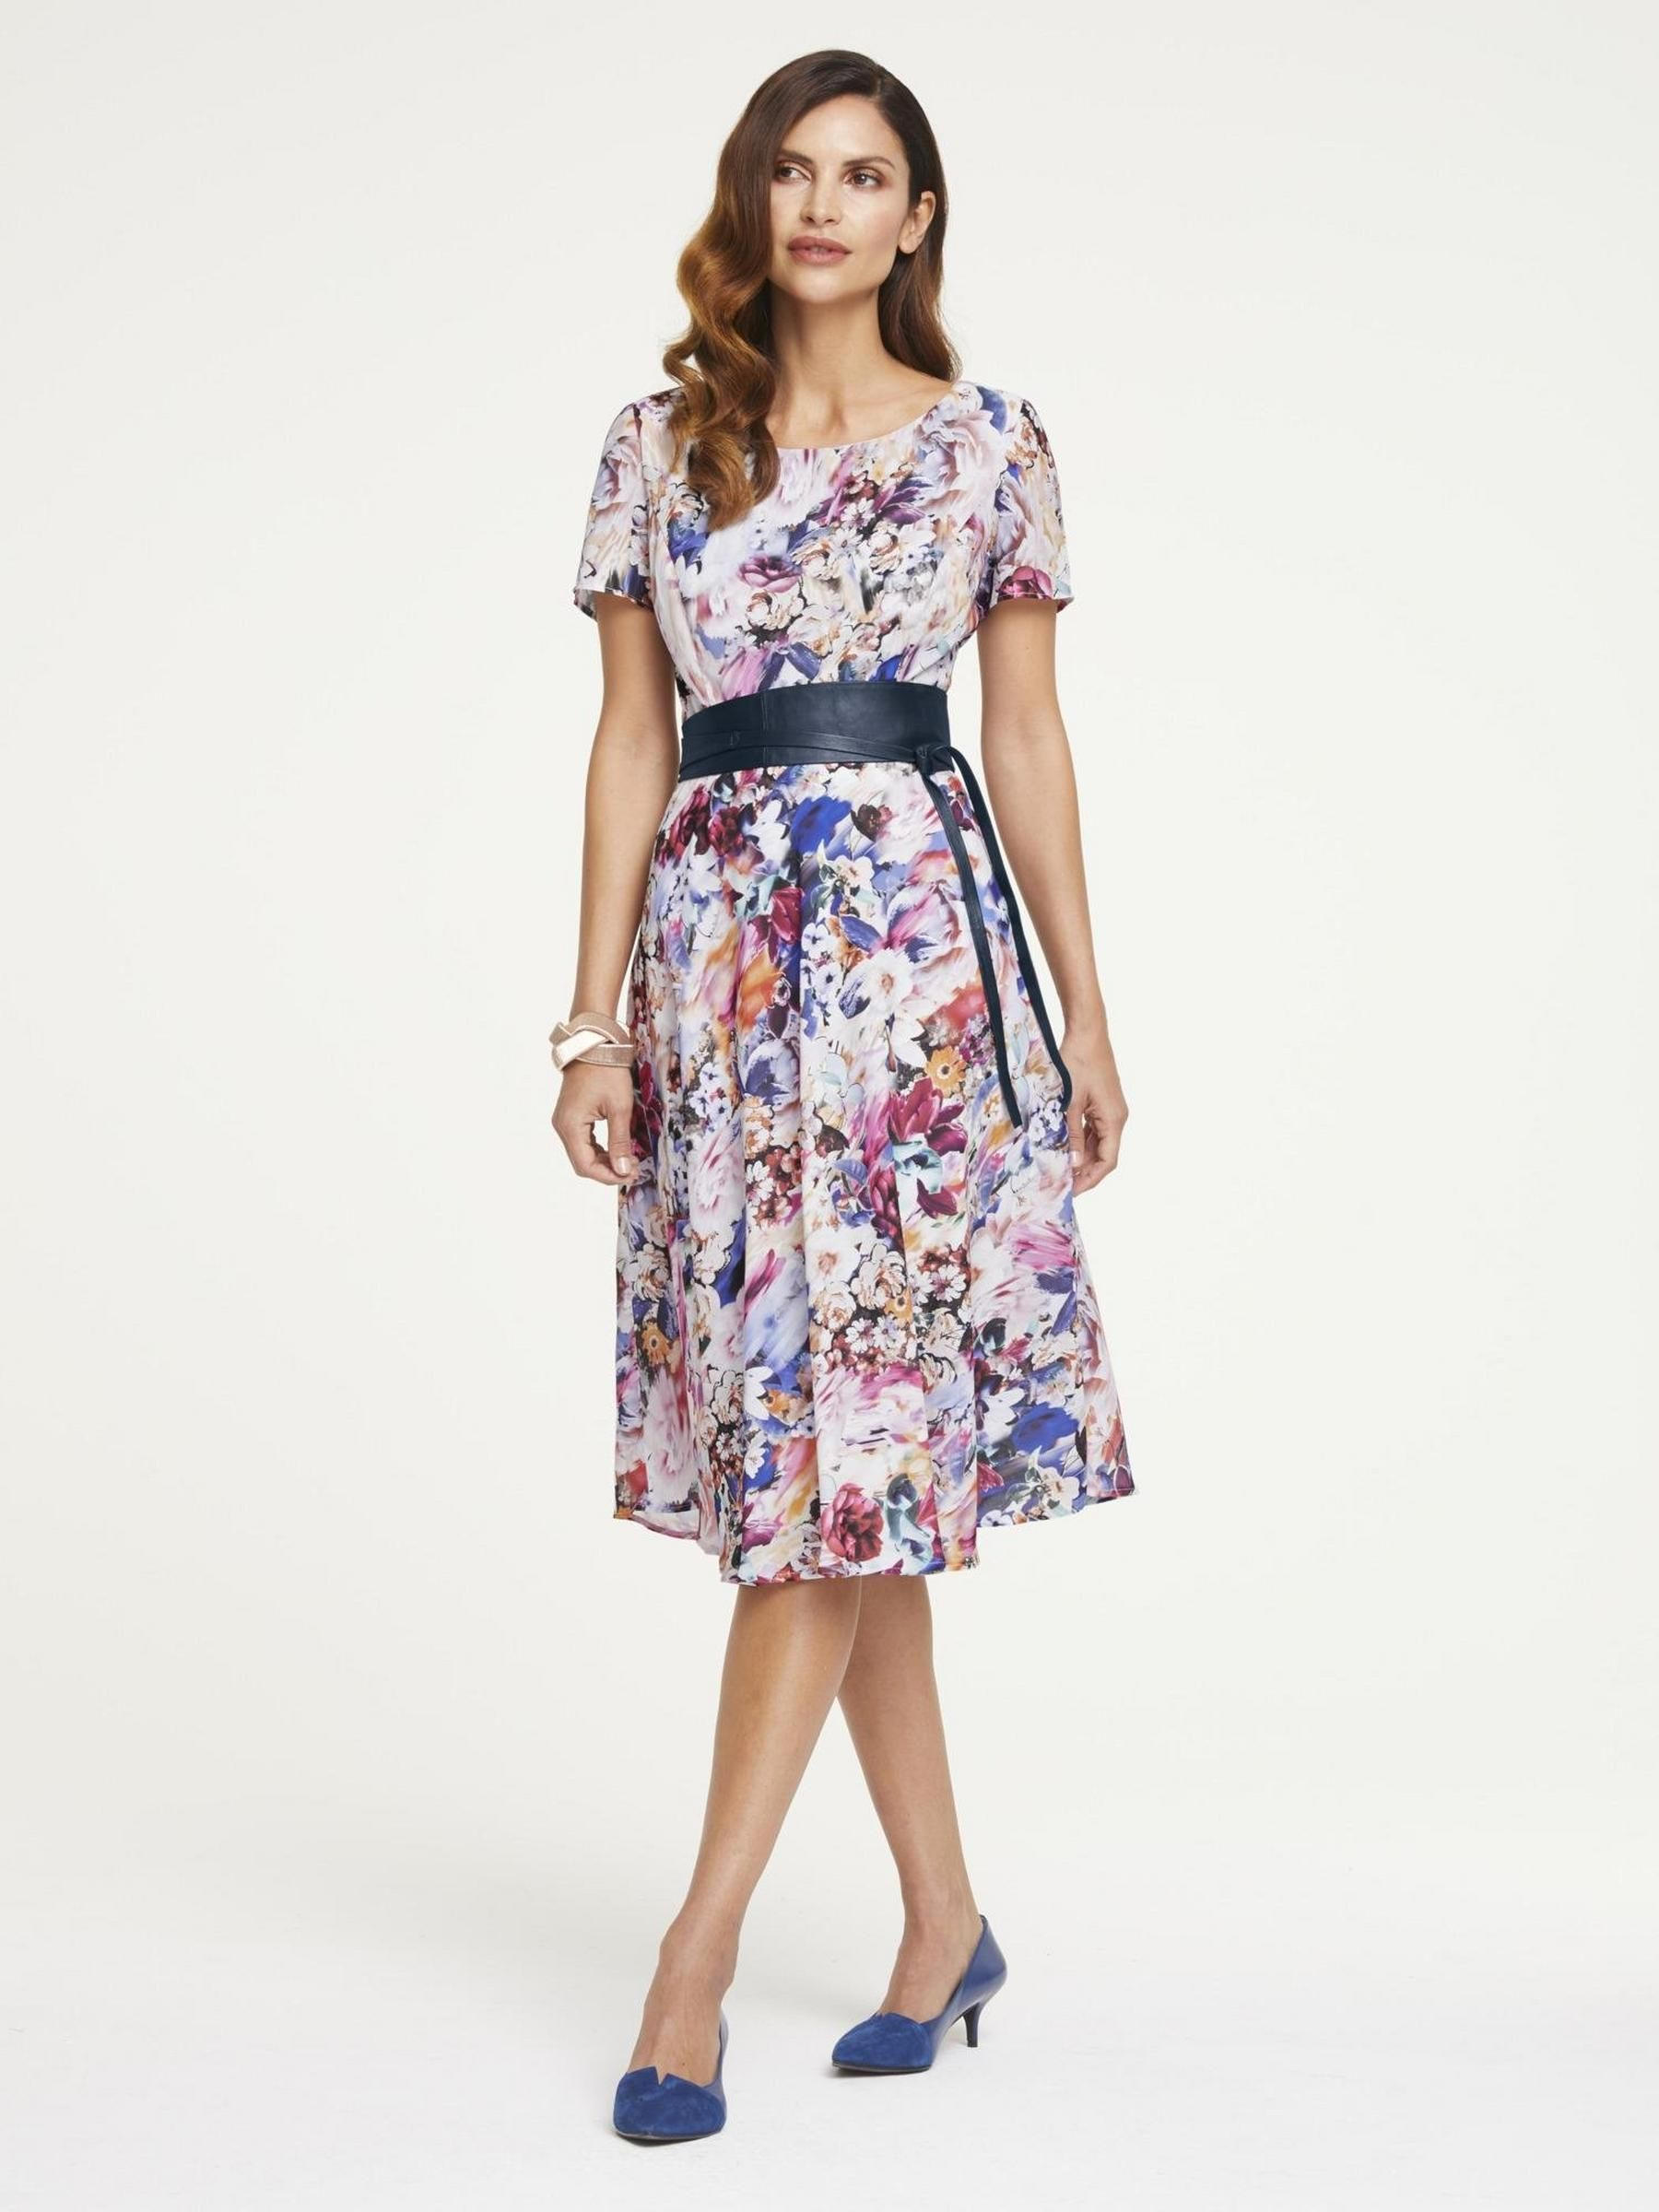 heine--timeless print dress with floral--camila morais-- in